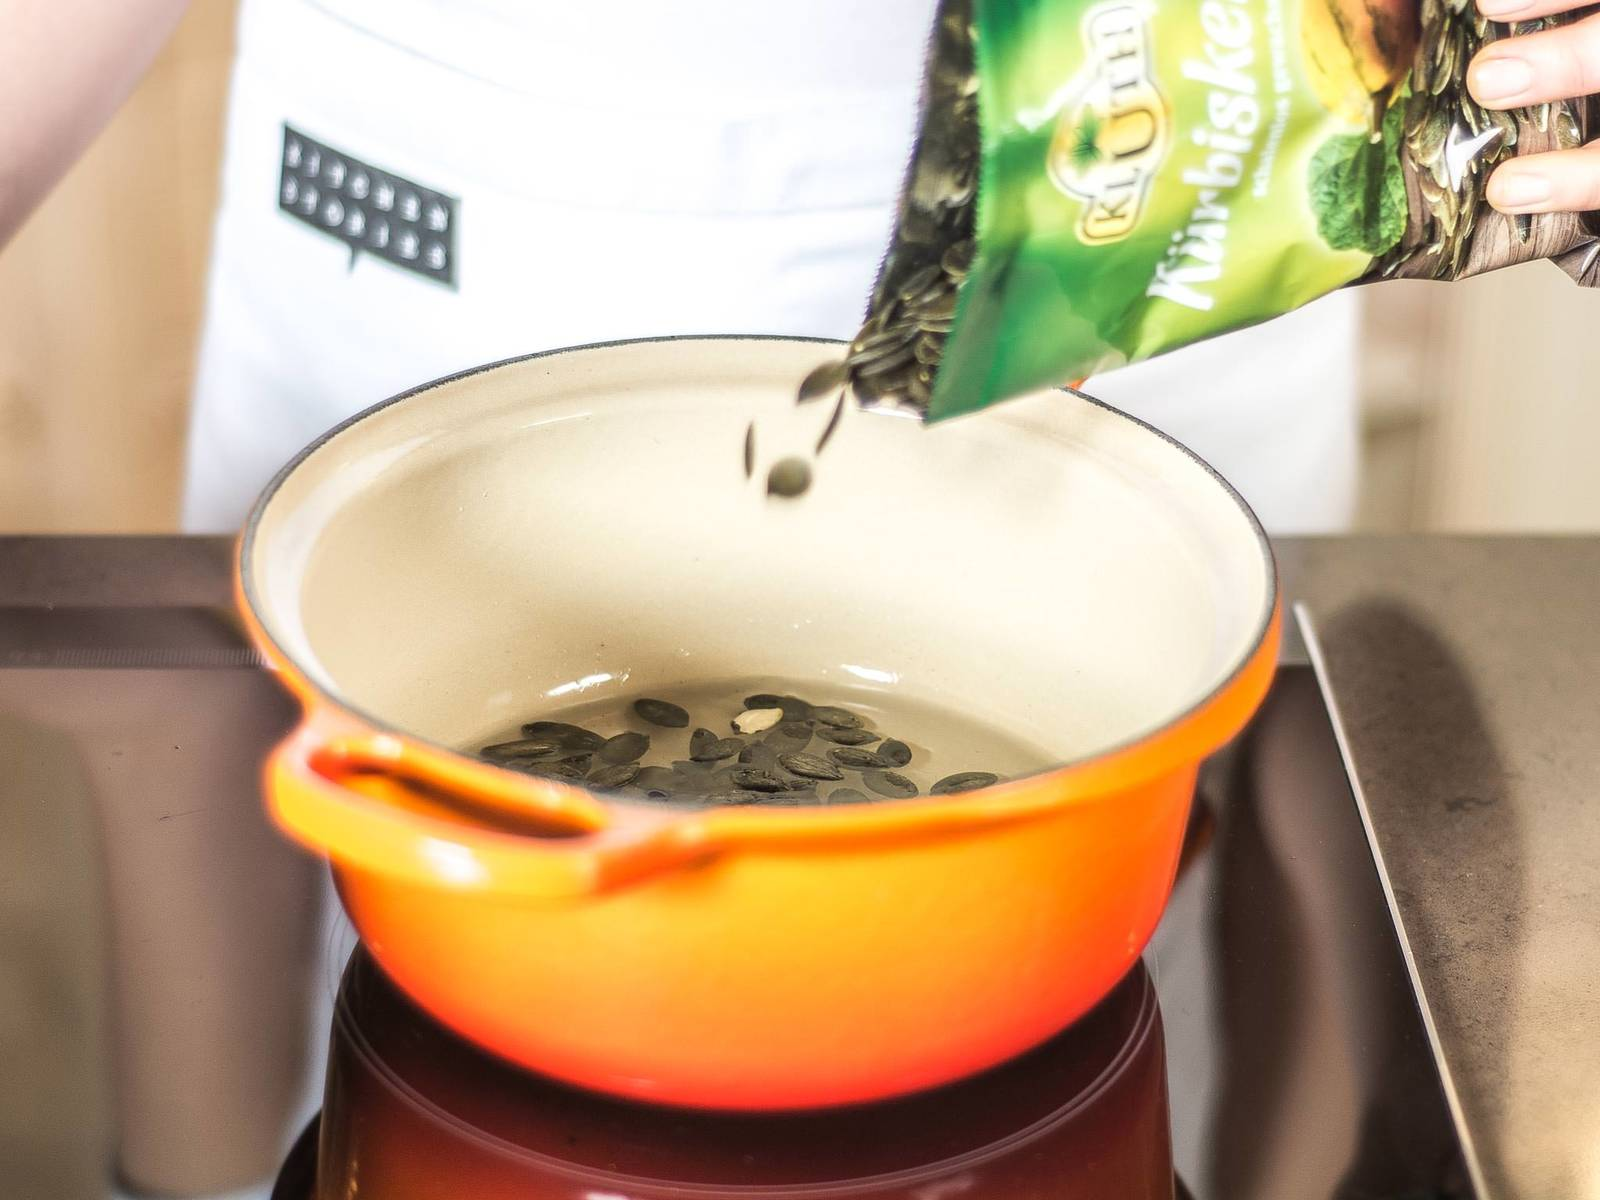 Place pumpkin seeds, water, and sugar in a small saucepan. While stirring constantly, heat until the water has fully evaporated and the sugar has caramelized and is amber-colored. The pumpkin seeds should rise slightly in the middle.